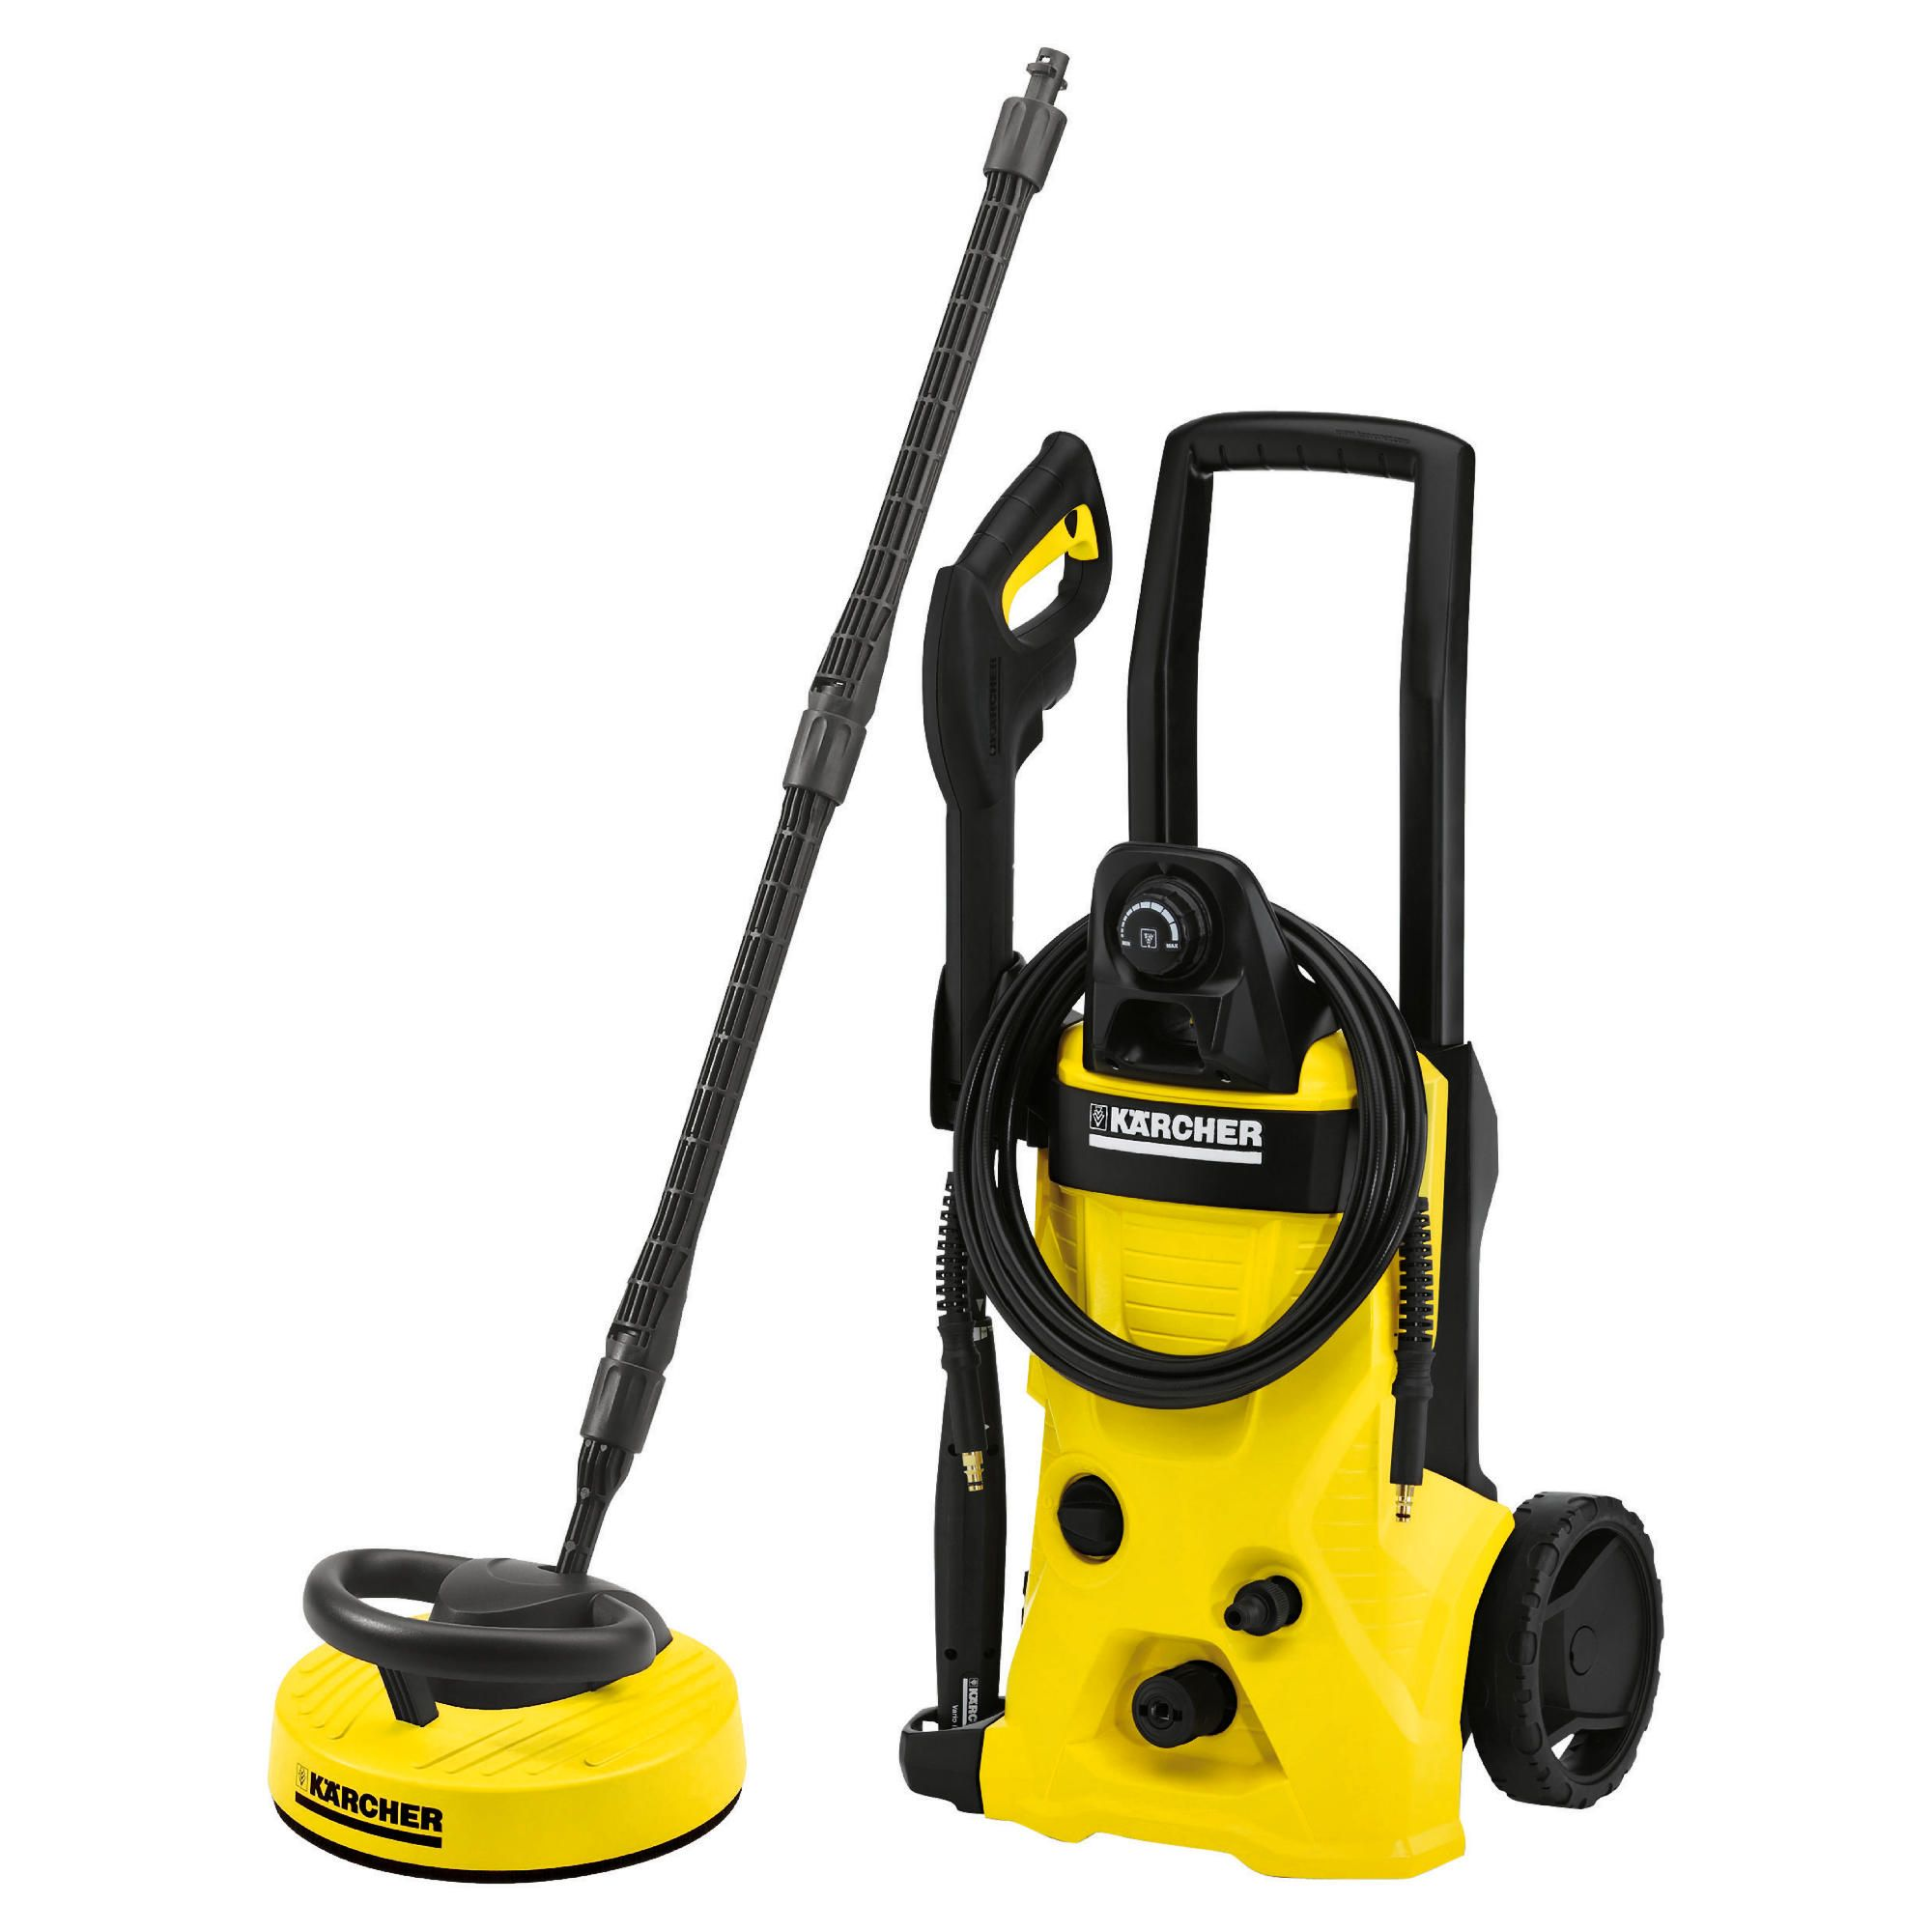 Karcher K4.600 & T200 X Series Pressure Washer at Tesco Direct